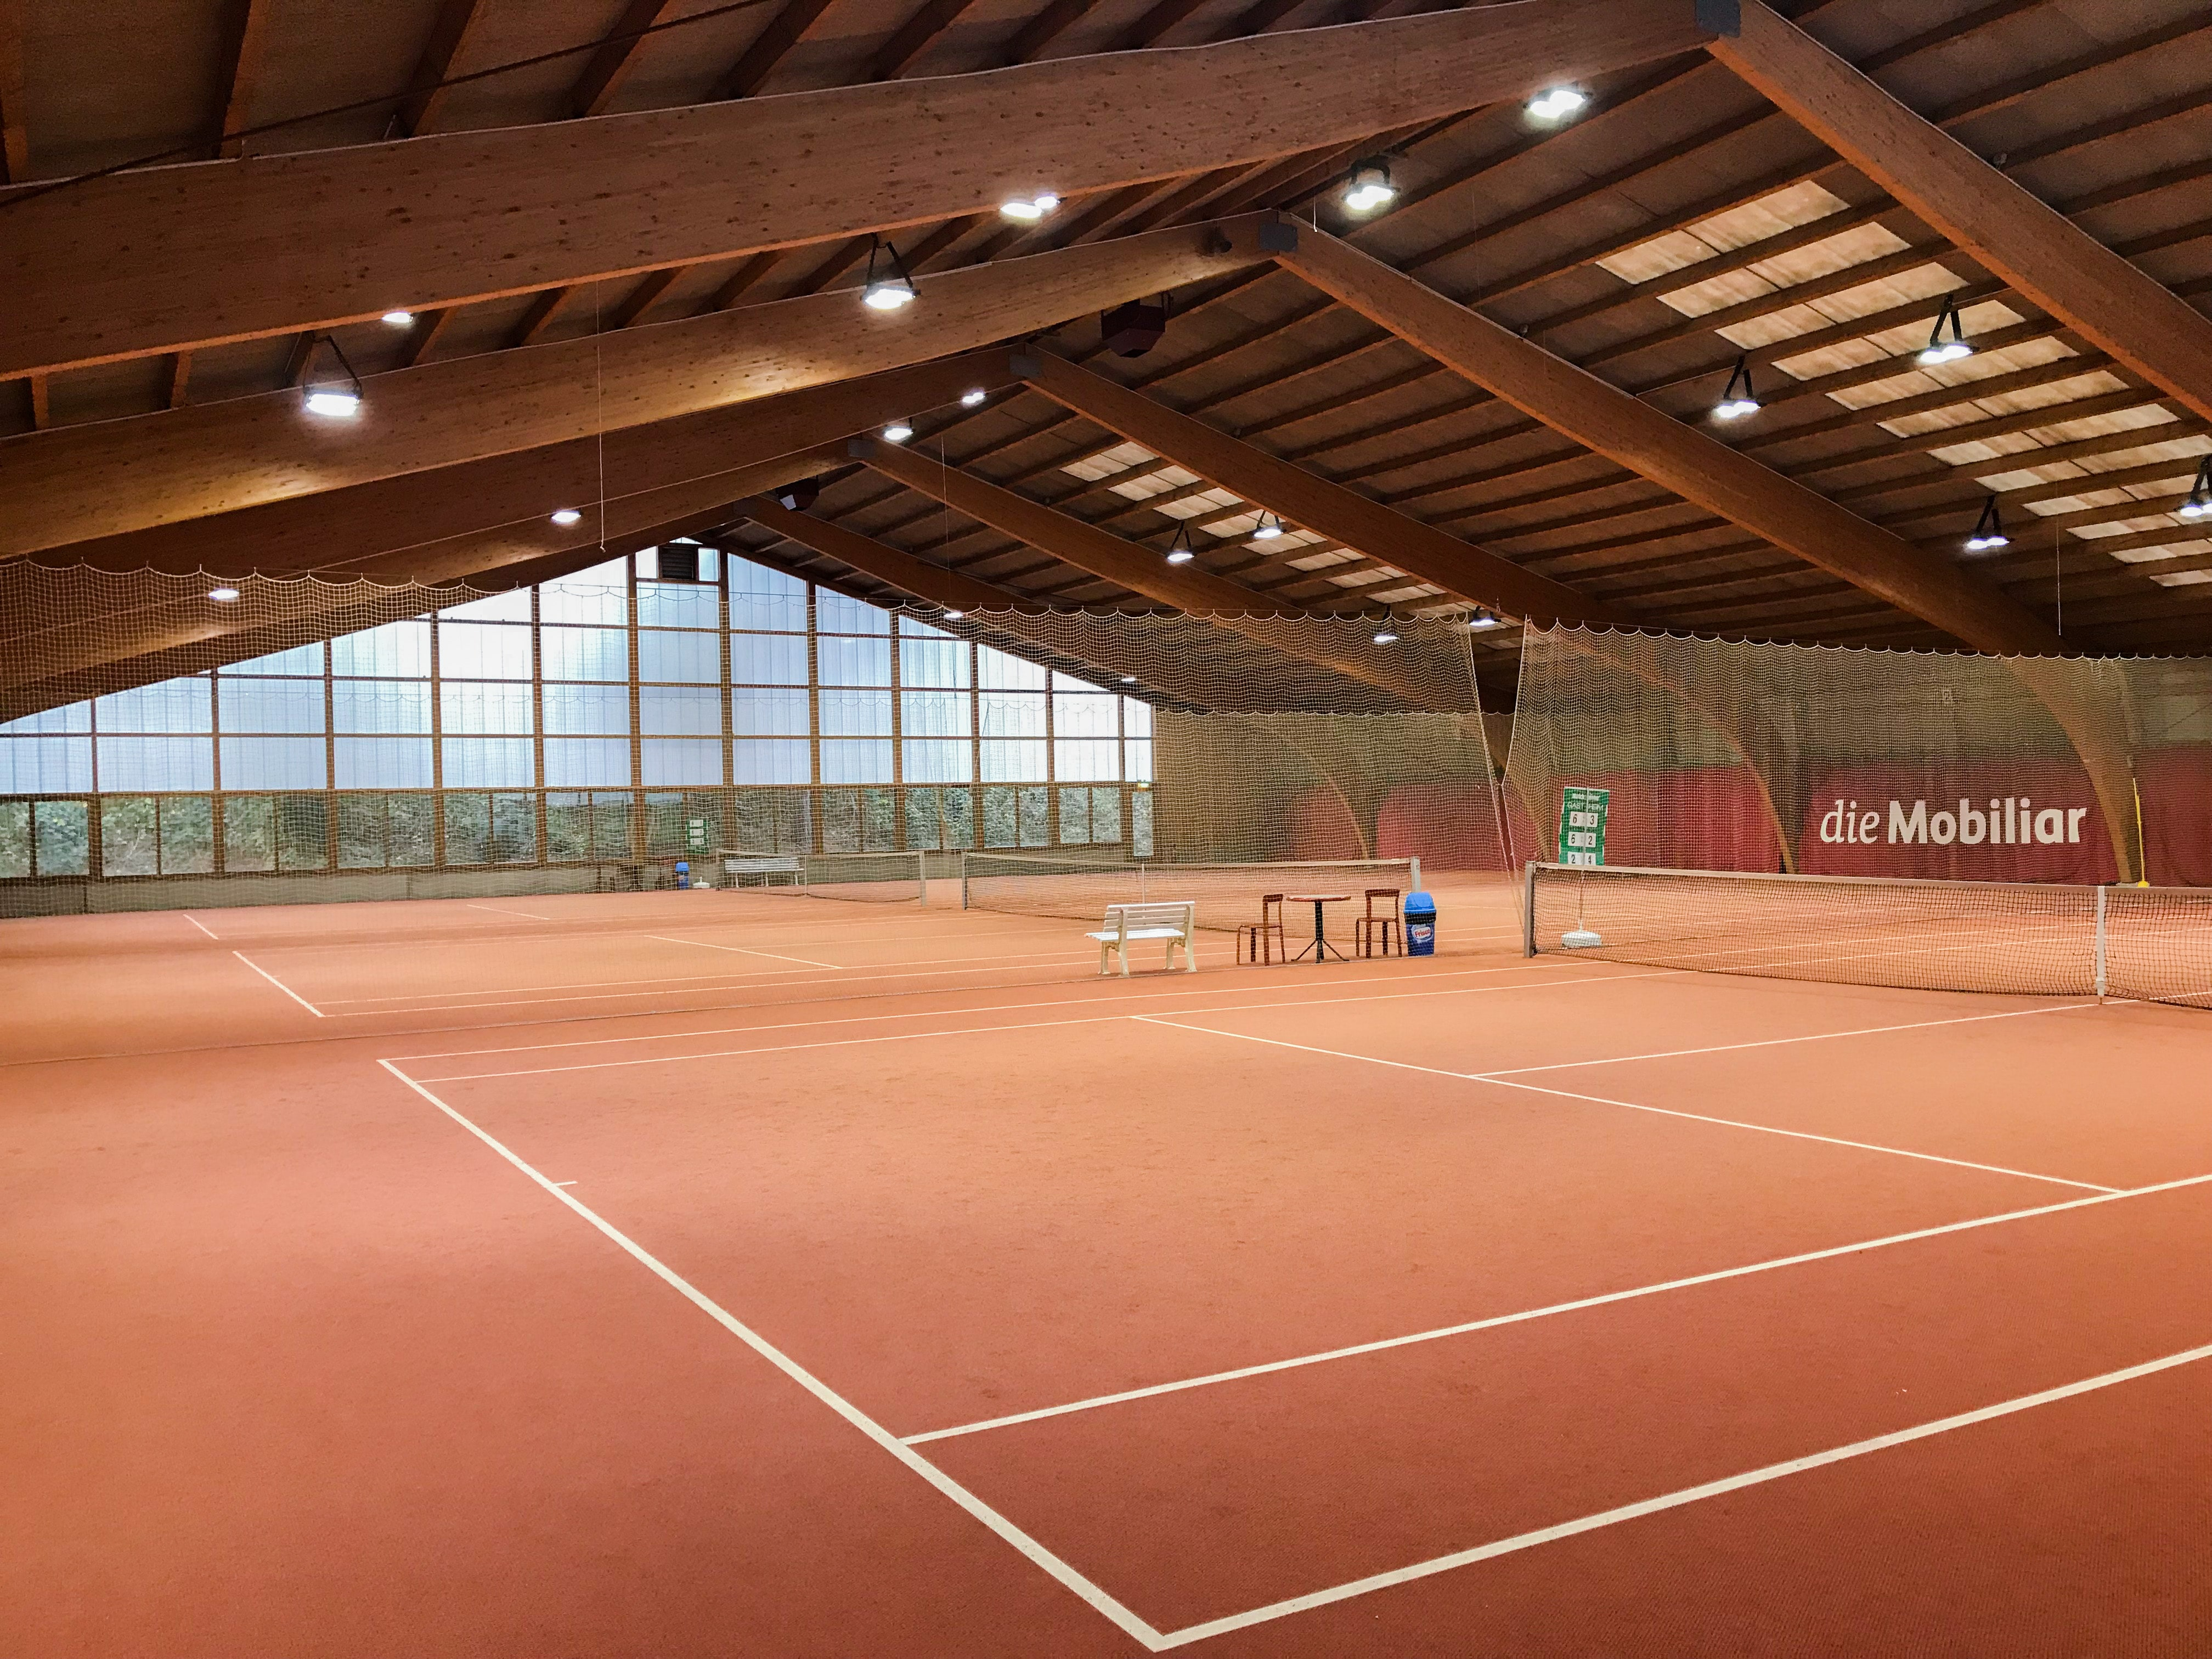 Picture of the tennis court of the Sportcenter Bustelbach